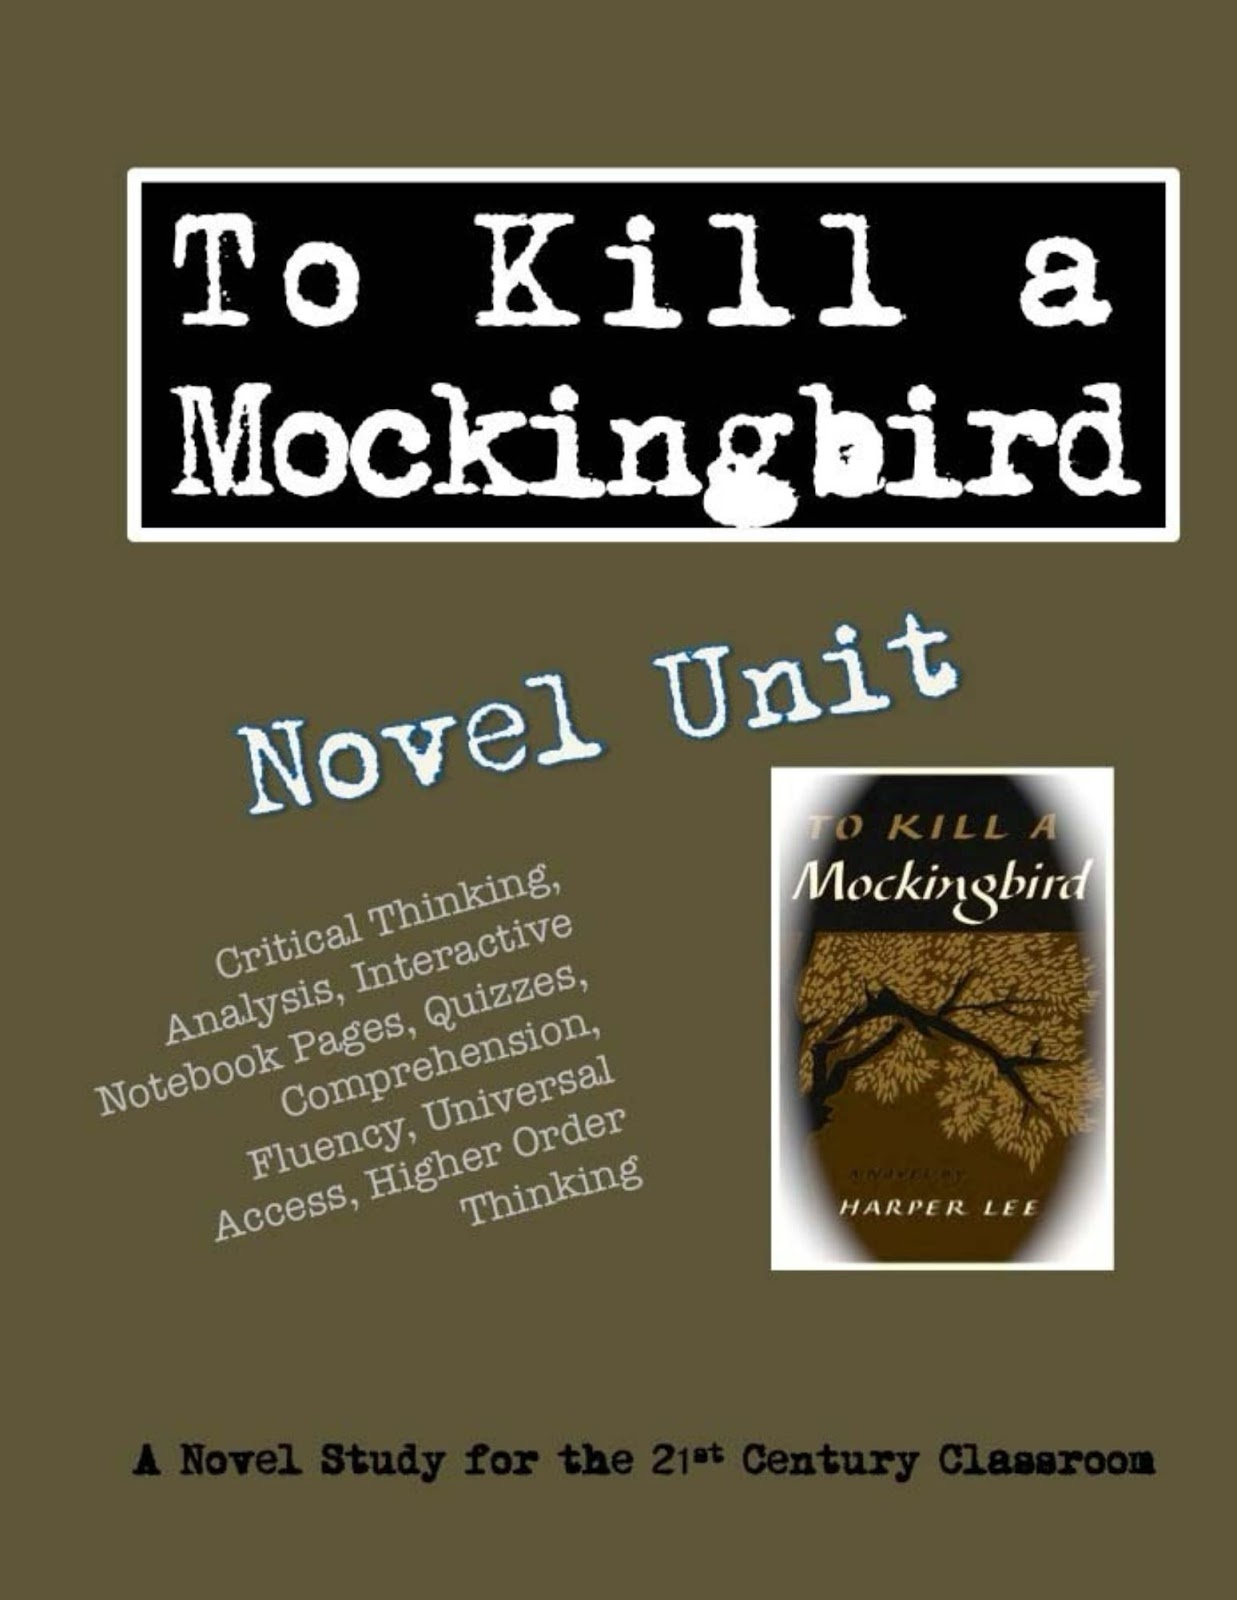 an analysis of knowledge in to kill a mockingbird a novel by harper lee One of the reasons that harper lee's novel, to kill a mockingbird, is considered an american classic surely consists of the fact that its key theme of racial injustice continues to strike a.